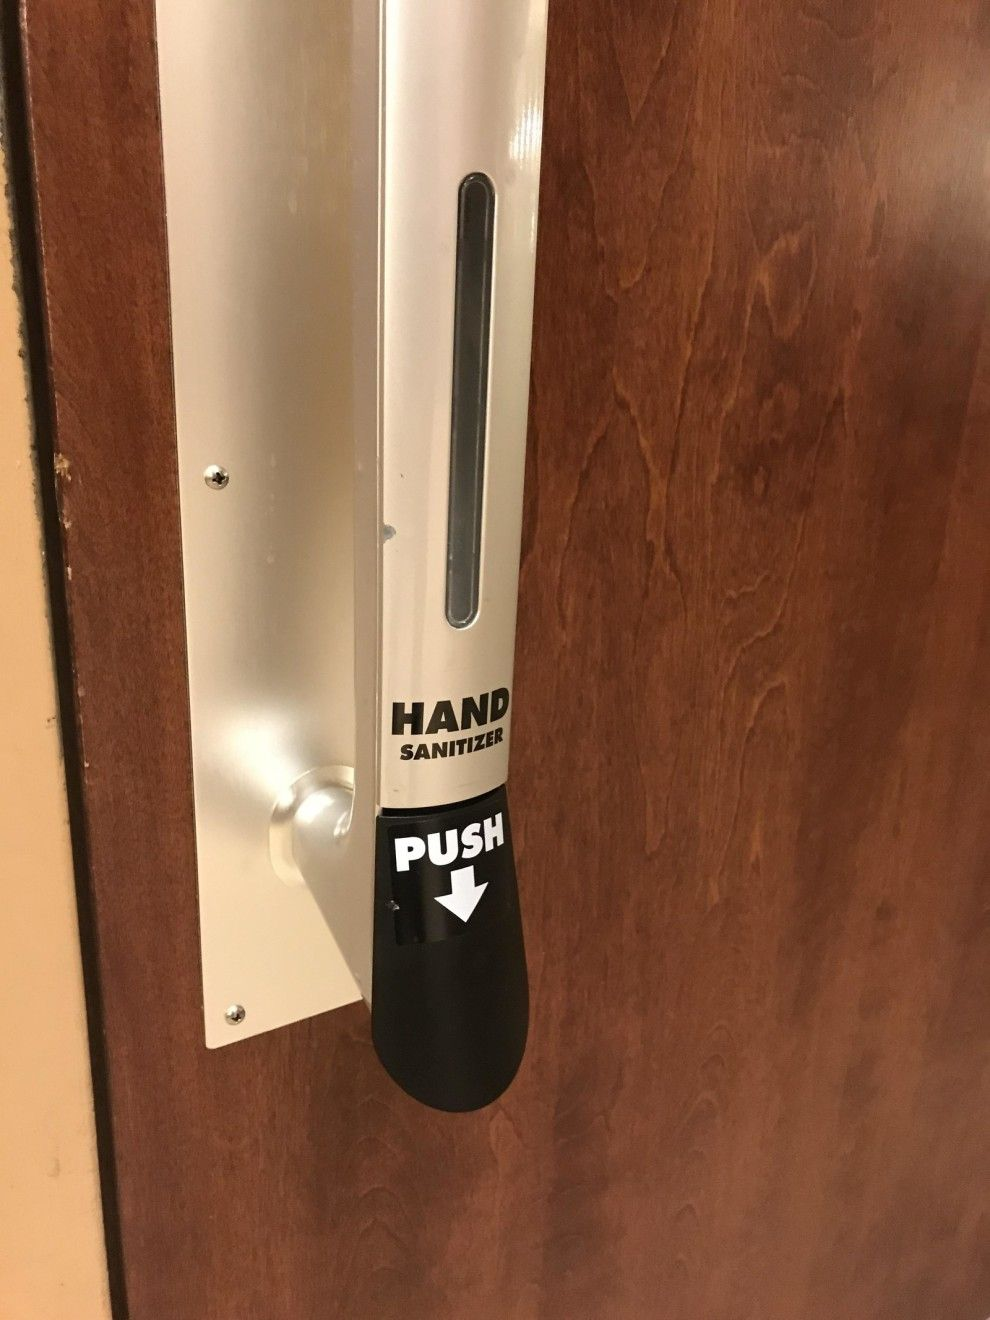 26 Pictures That Prove We Are Actually Living In 3018 Facilities